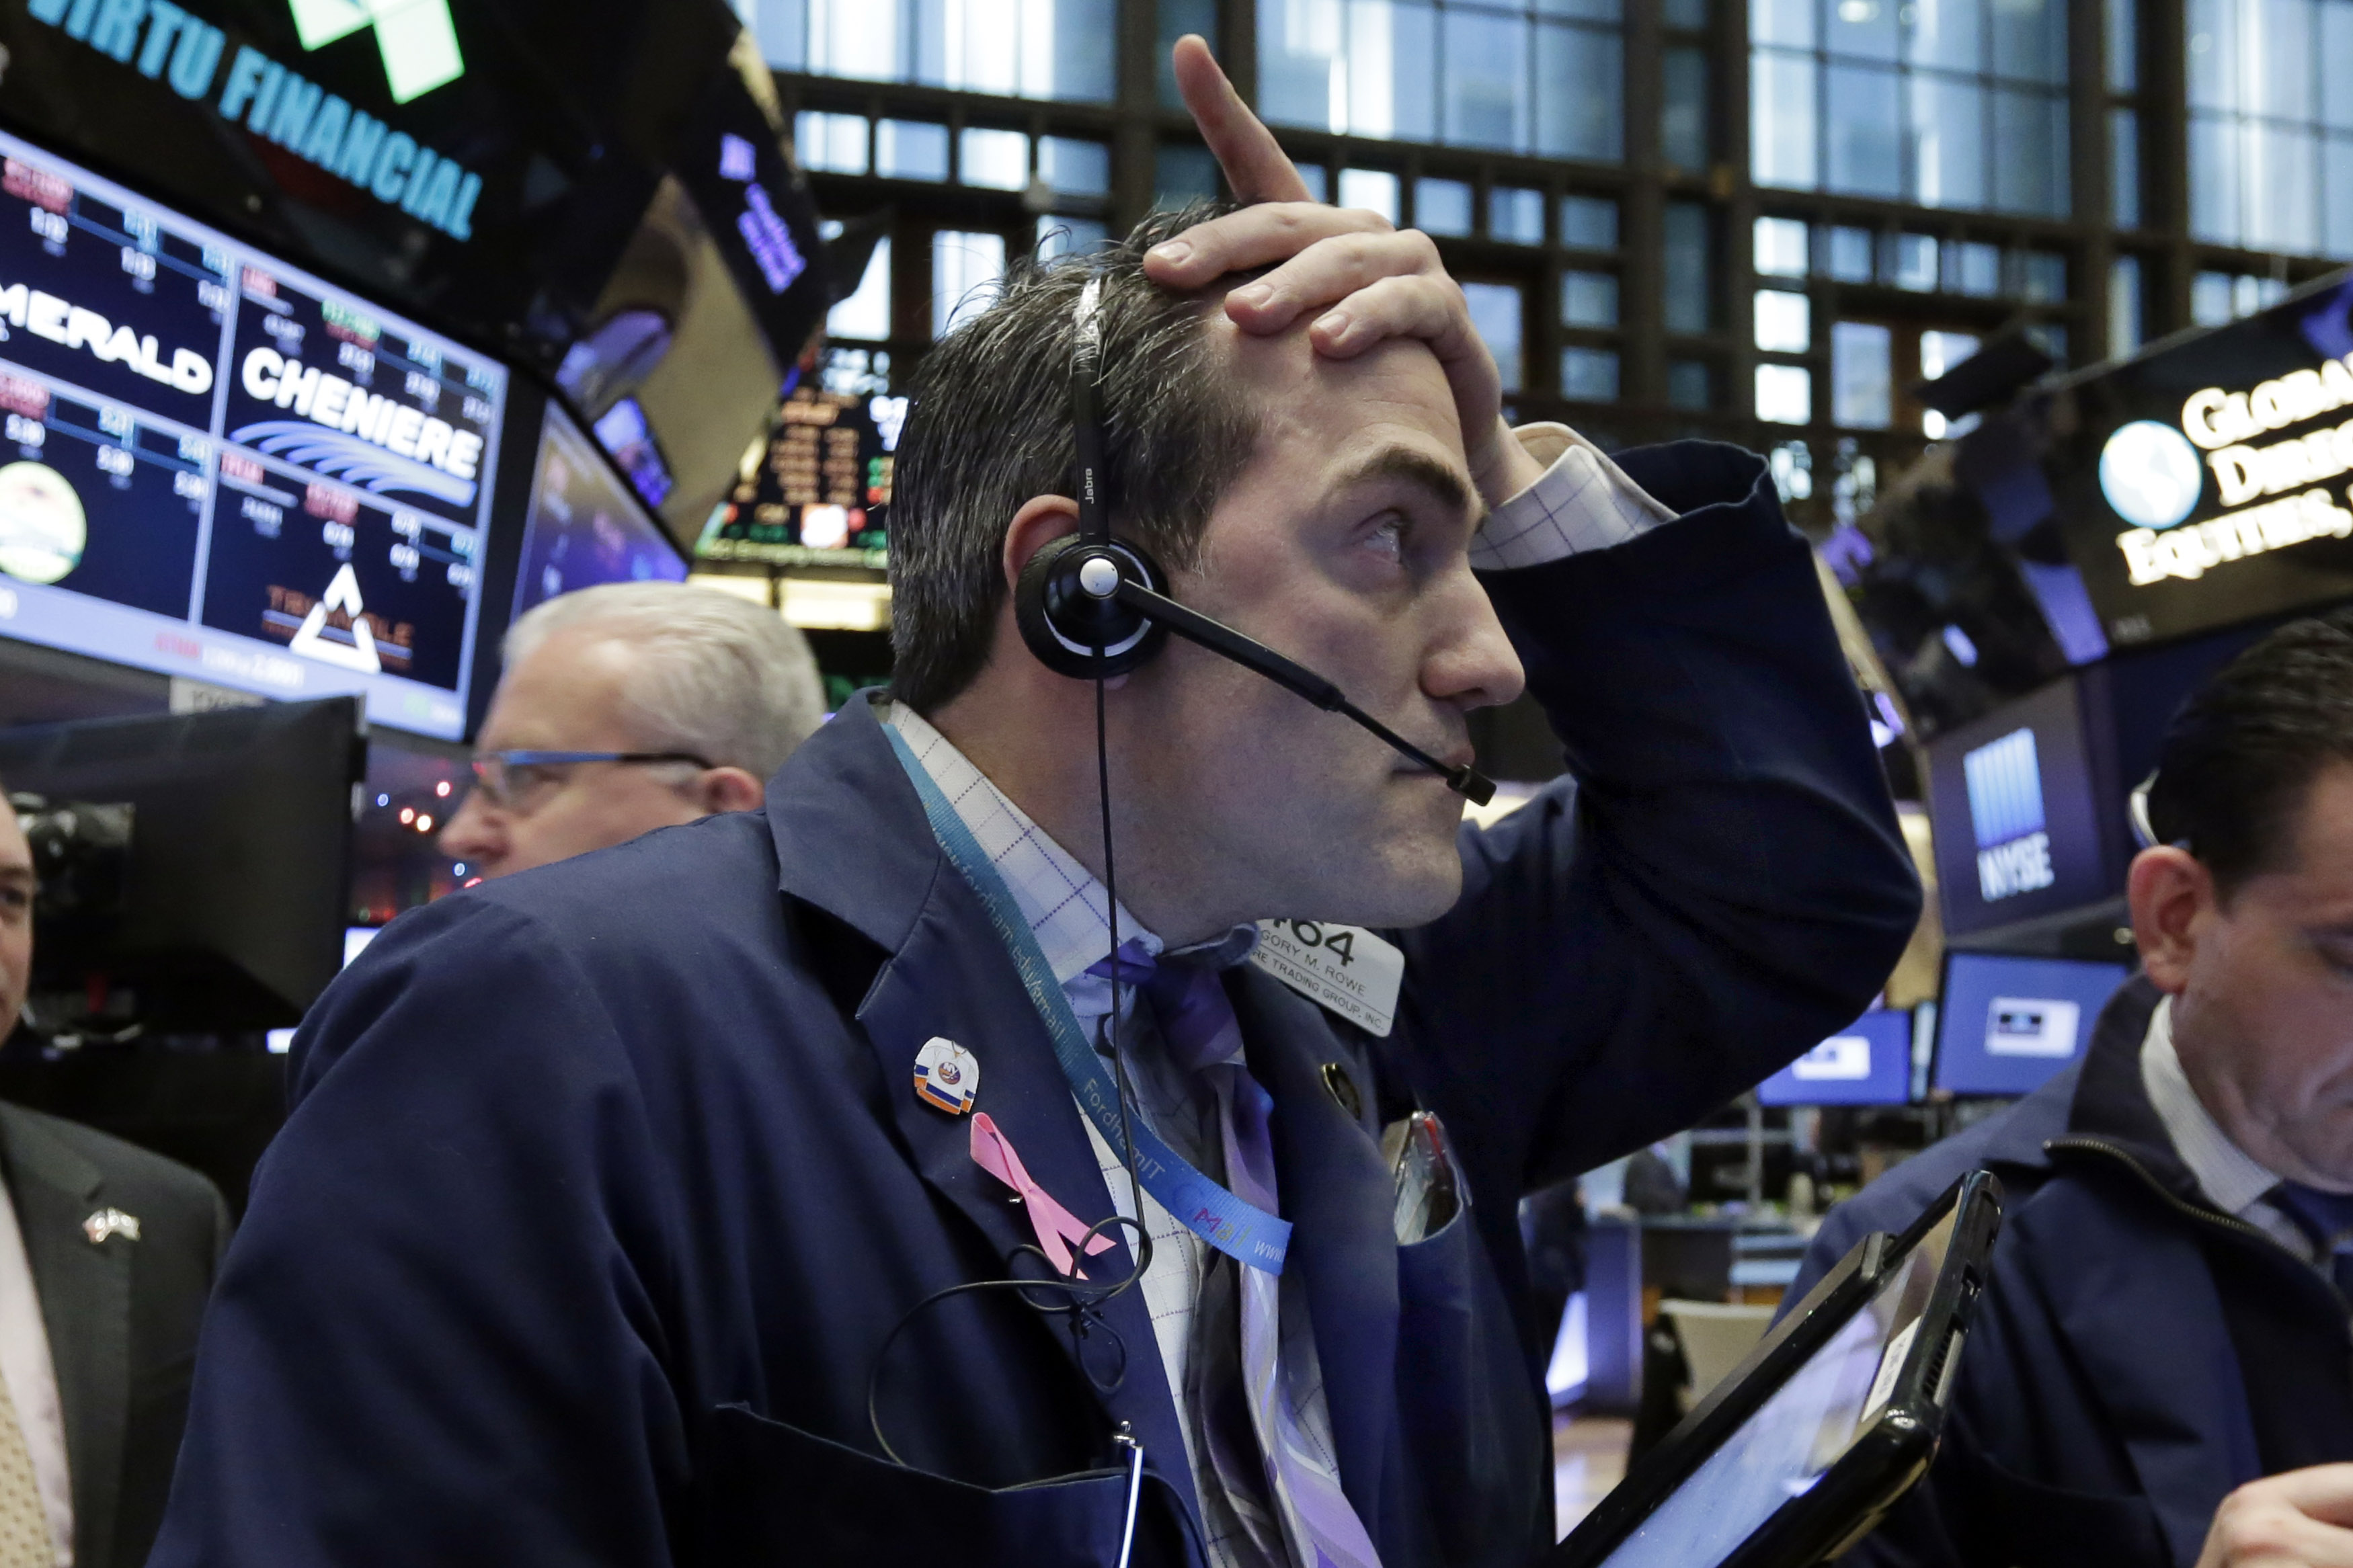 US stocks gain in final session; 2018 sees biggest decline since 2008